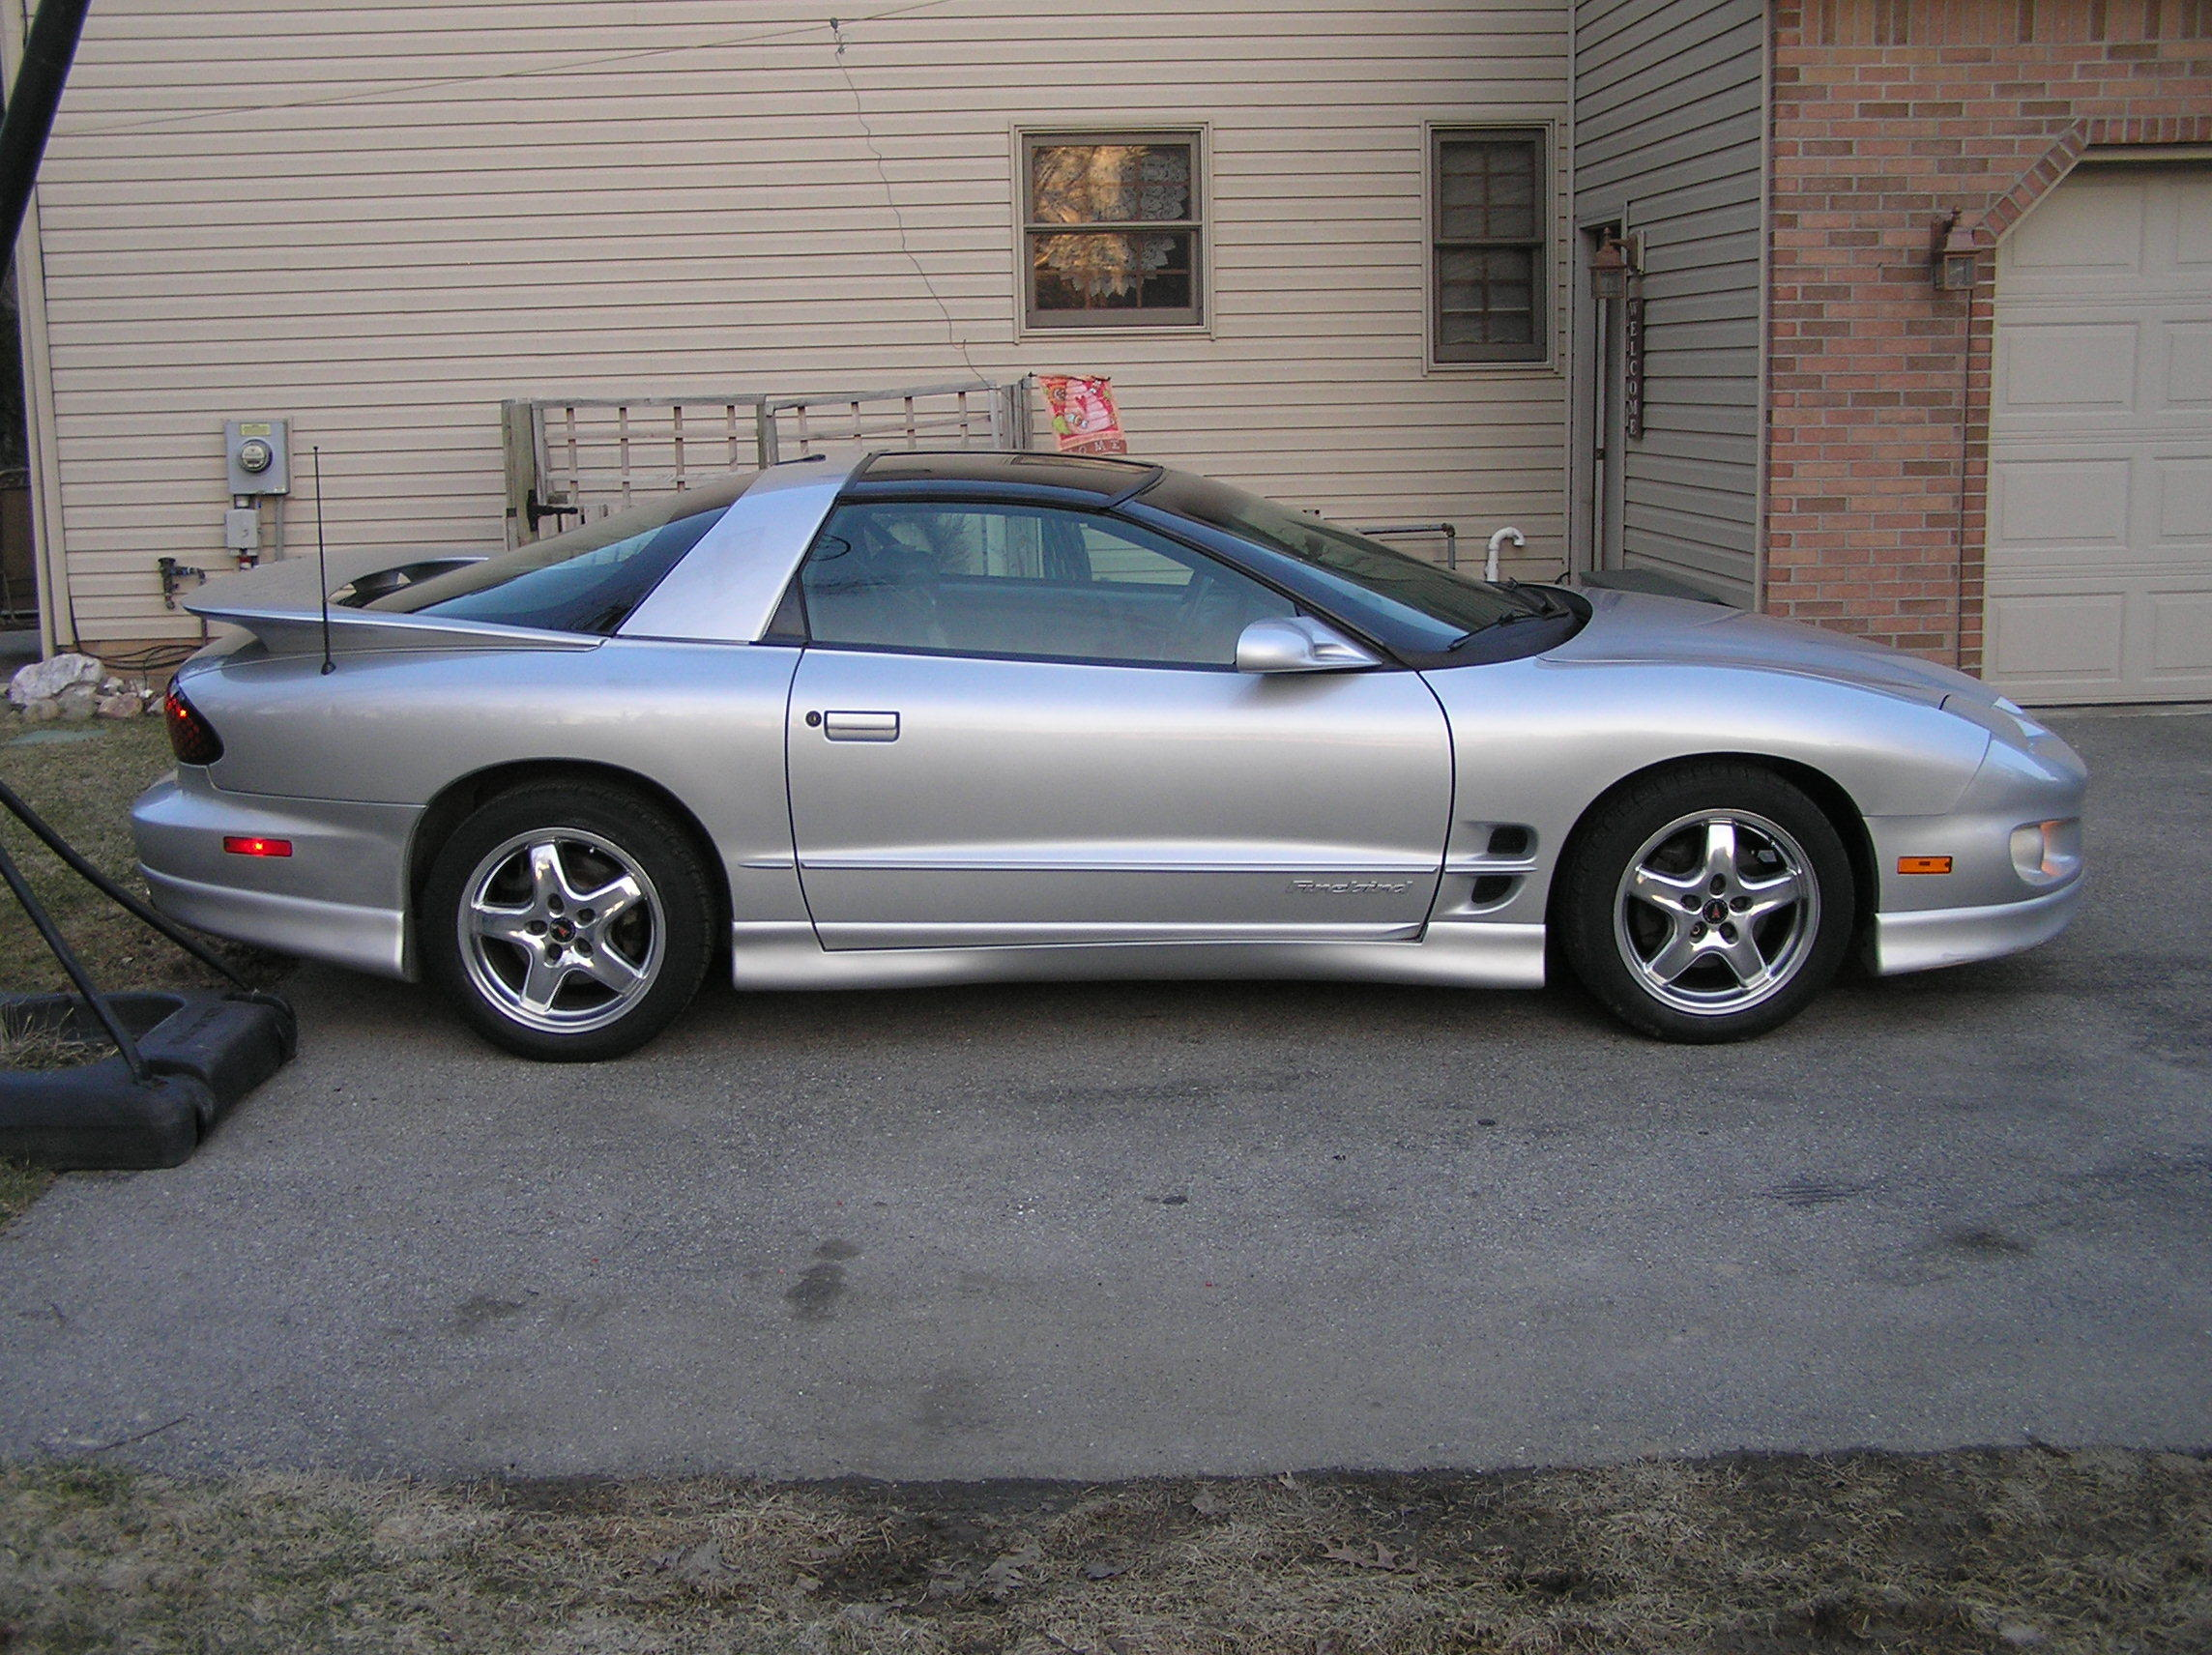 Project Firebird 1999 Pontiac Specs Photos Modification Wiring For 2002 Monsoon Stereo System 27879060035 Original